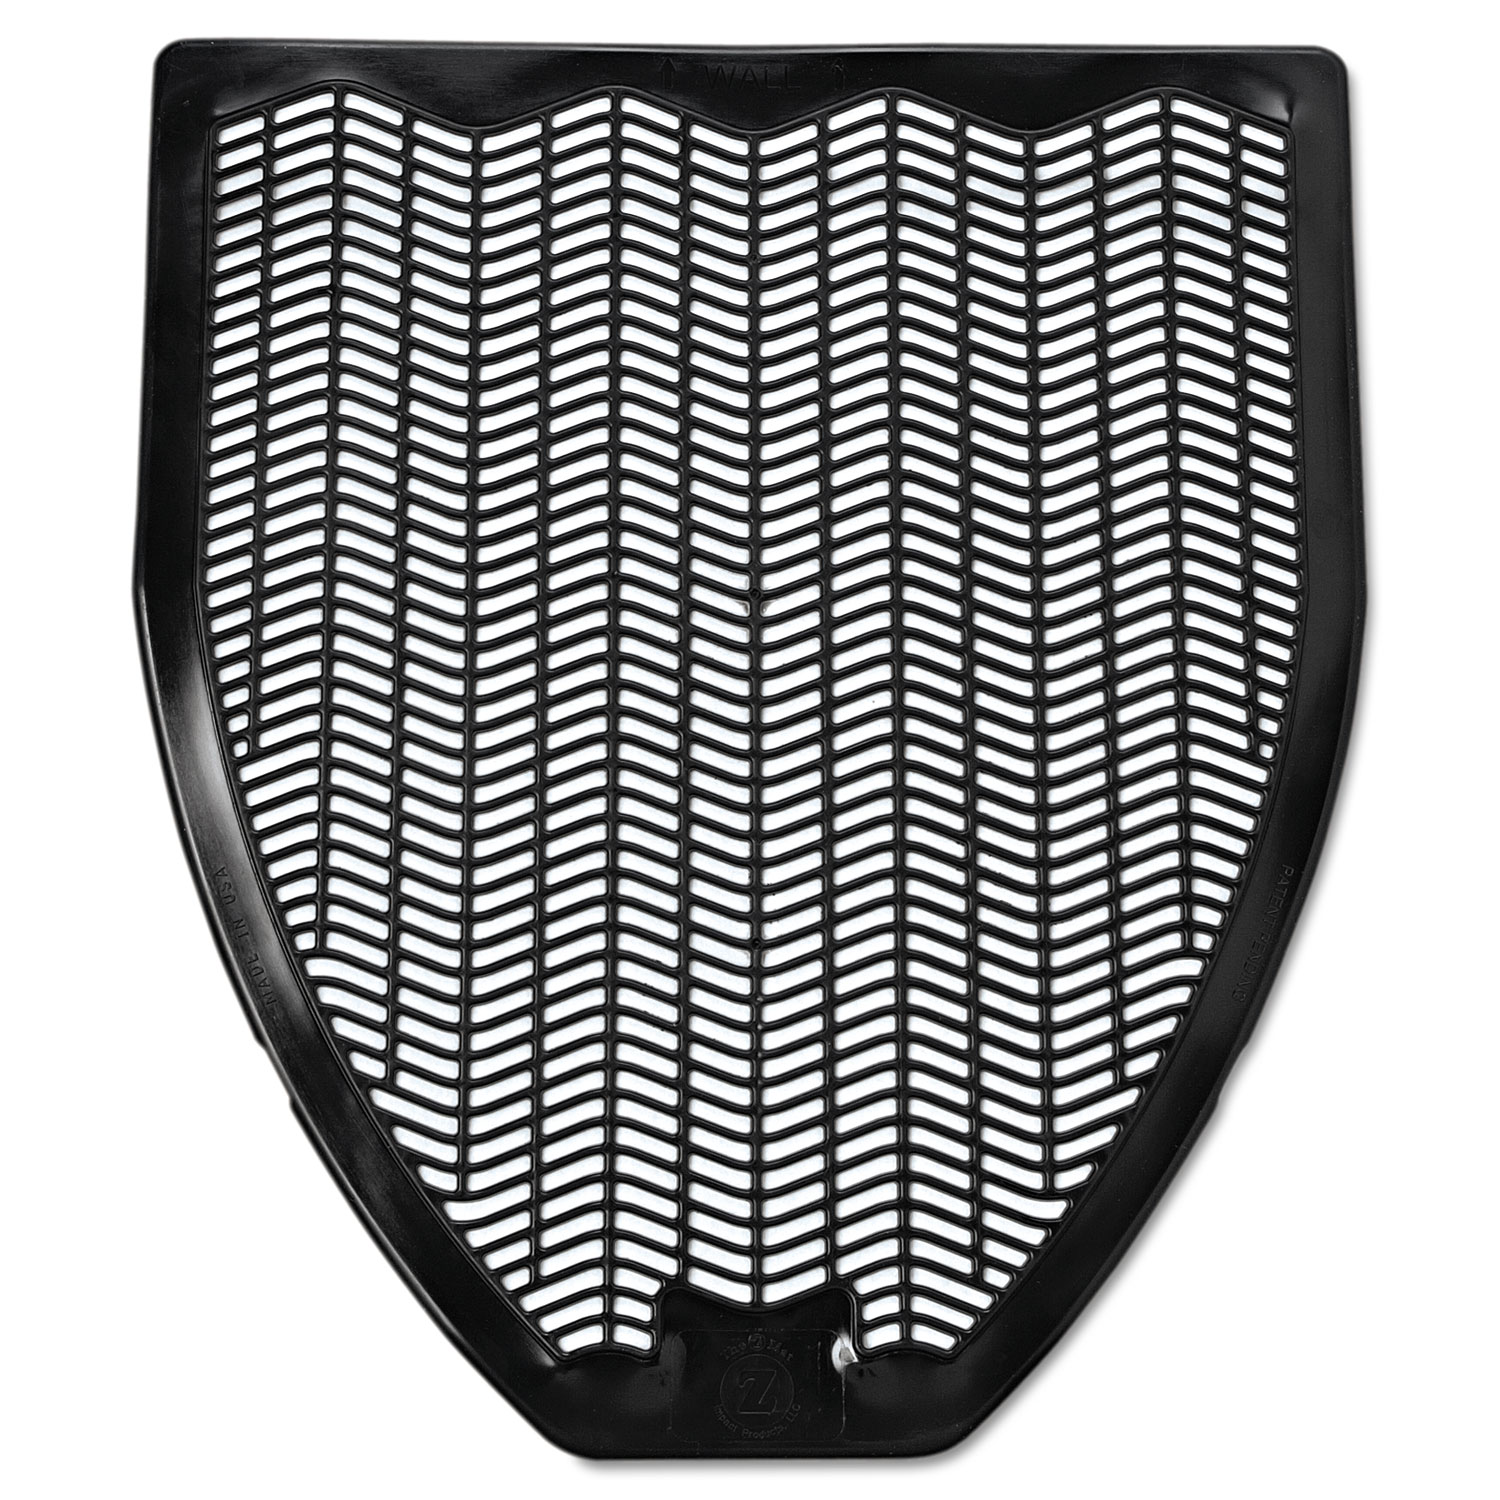 Disposable Urinal Floor Mat, Nonslip, Fresh Blast Scent, 17 1/2 x 20 3/8, Black, 6/Carton